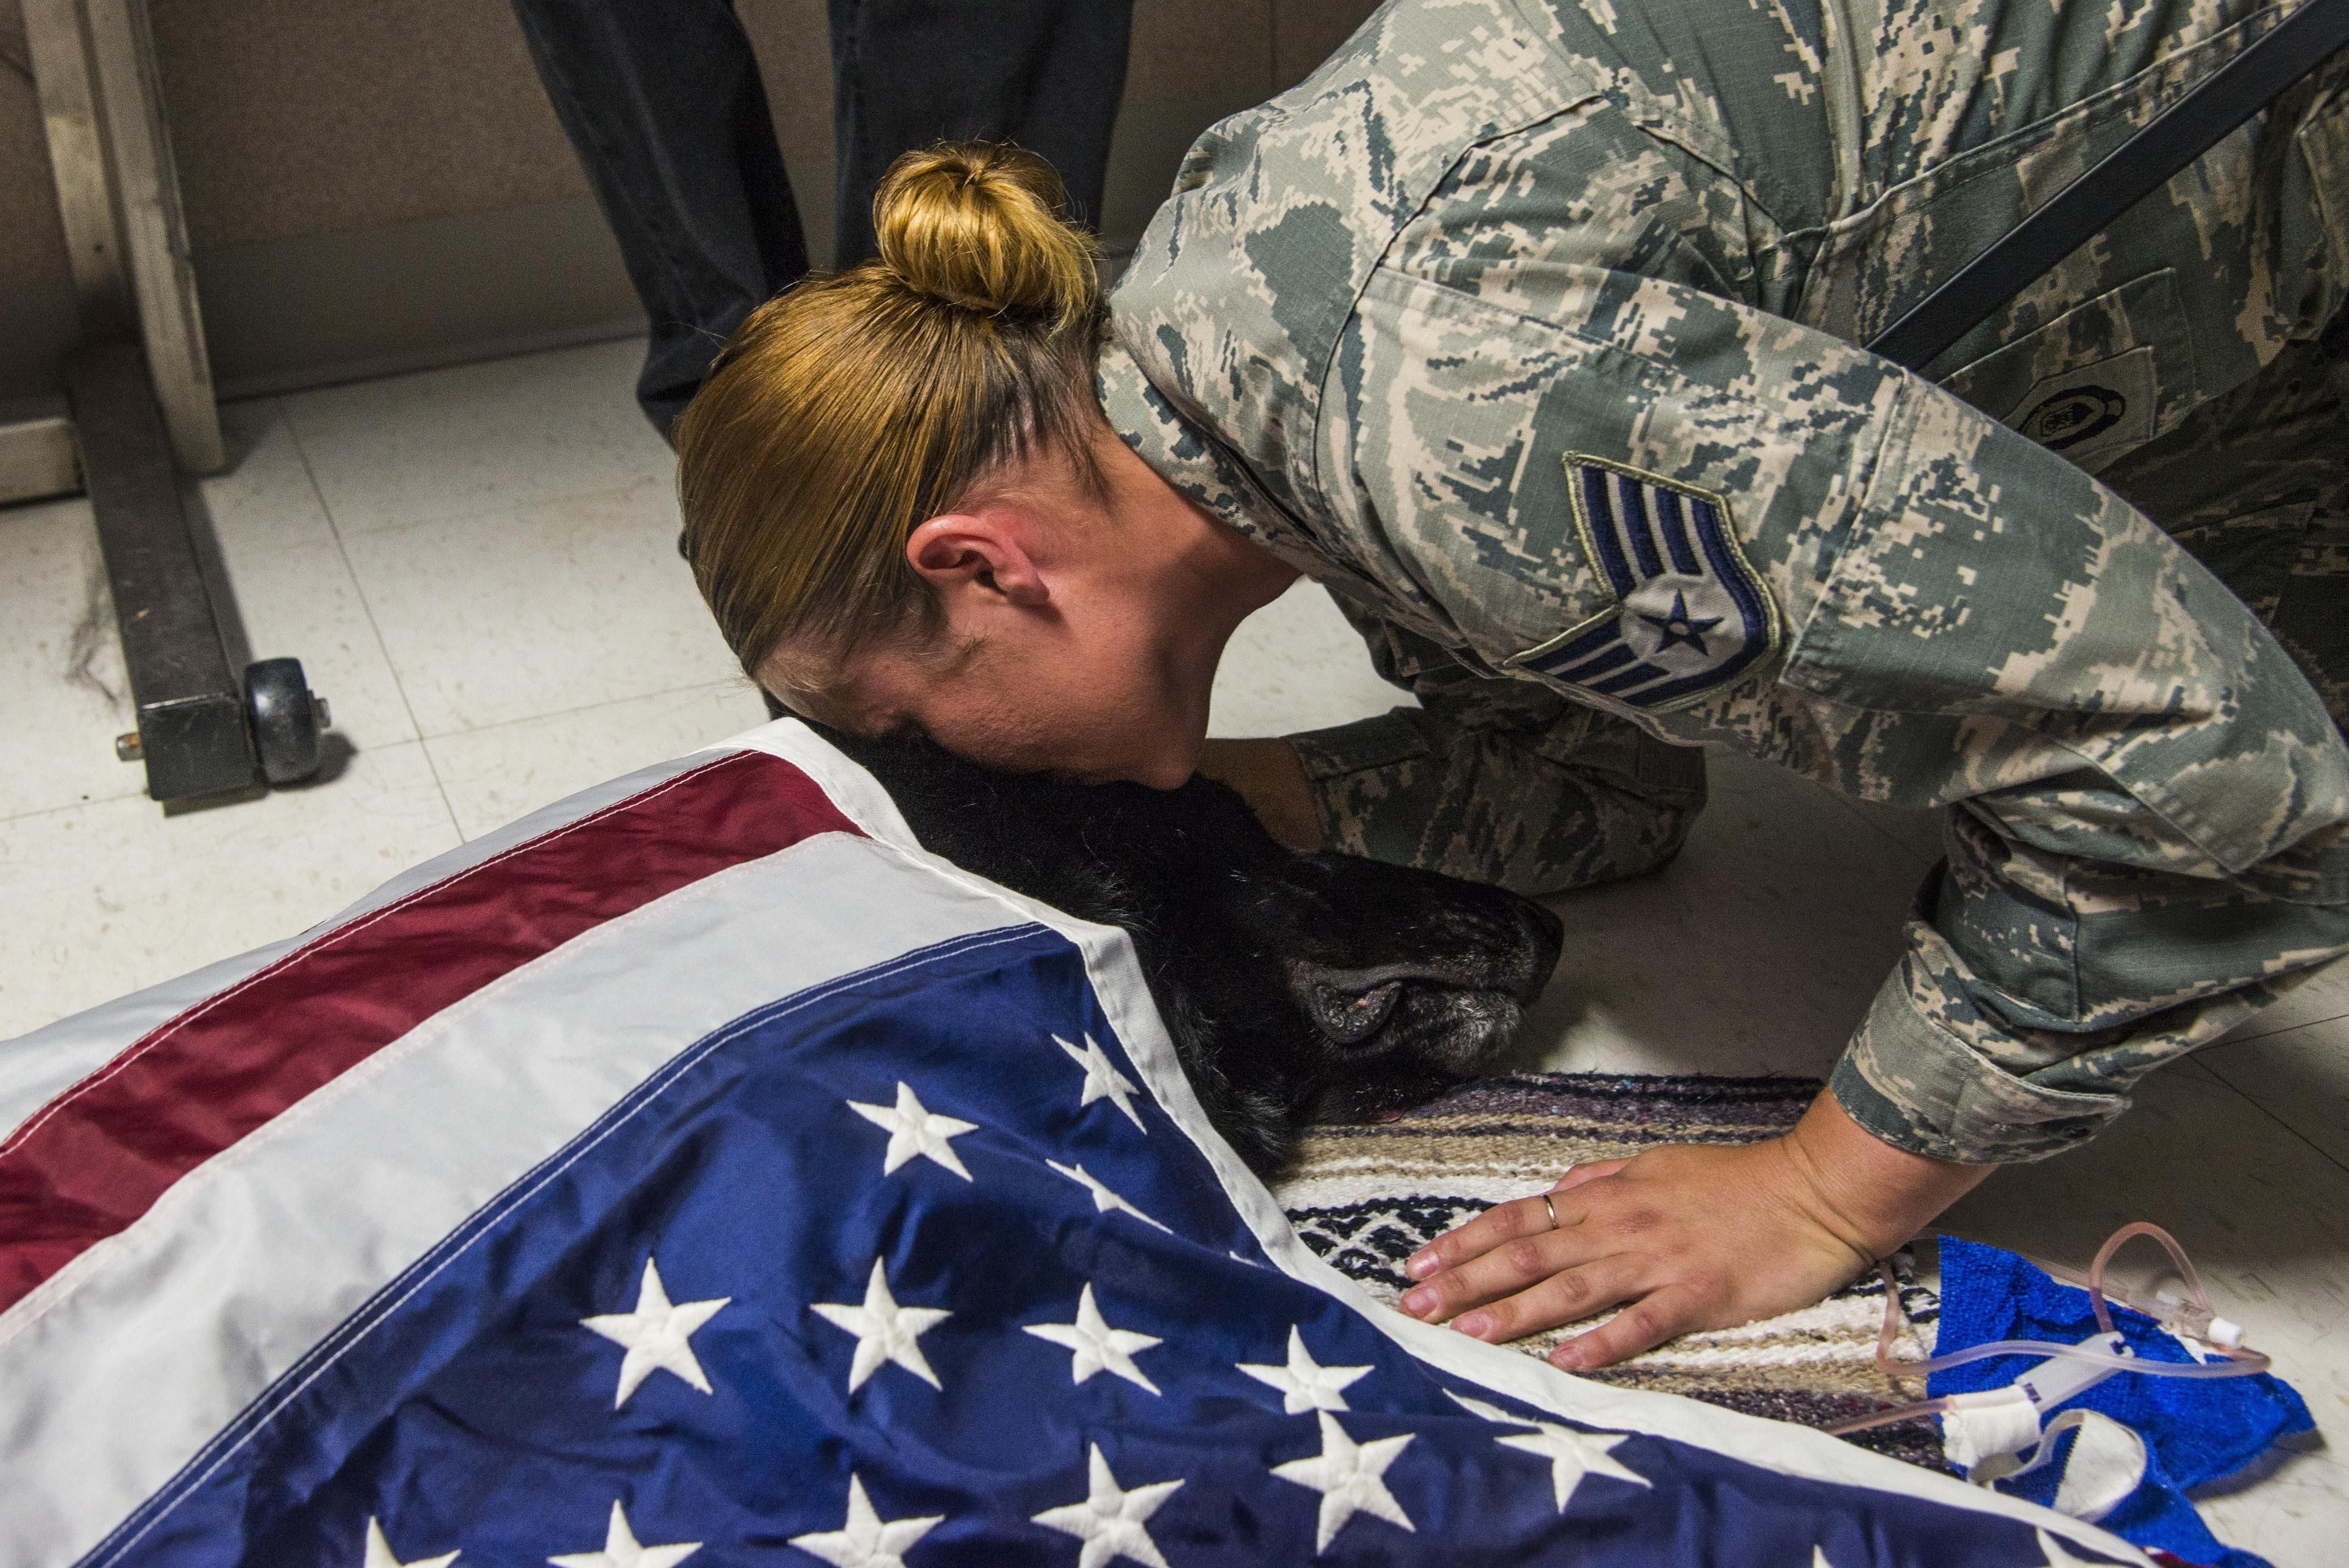 The 375th Security Forces Squadron personnel said goodbye